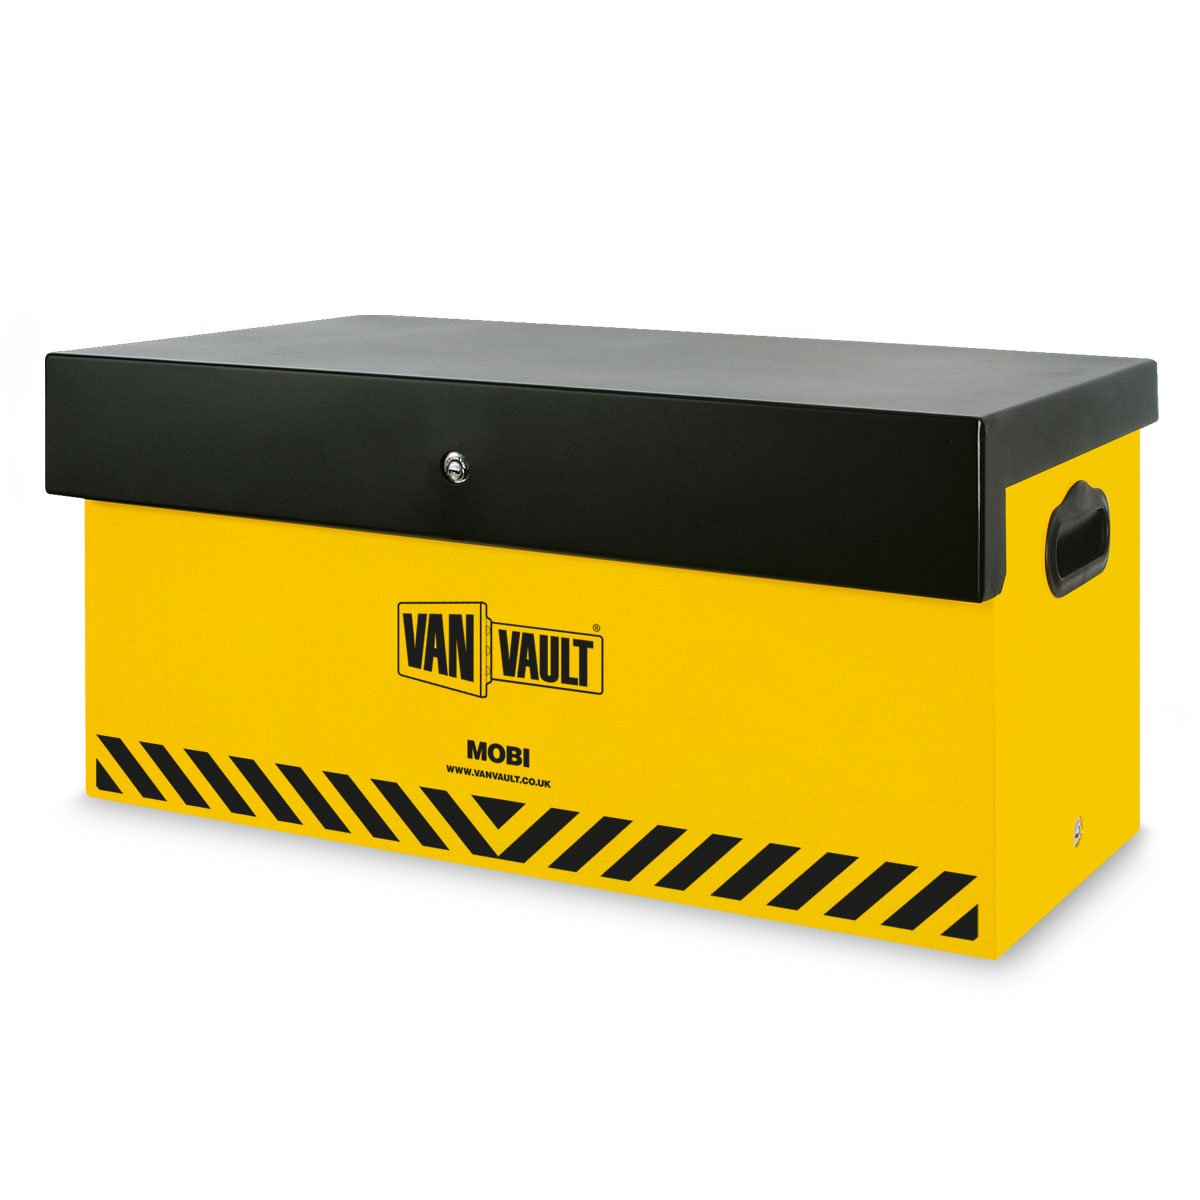 84a1536d52 Van Vault S10325 Slider  Amazon.co.uk  DIY   Tools